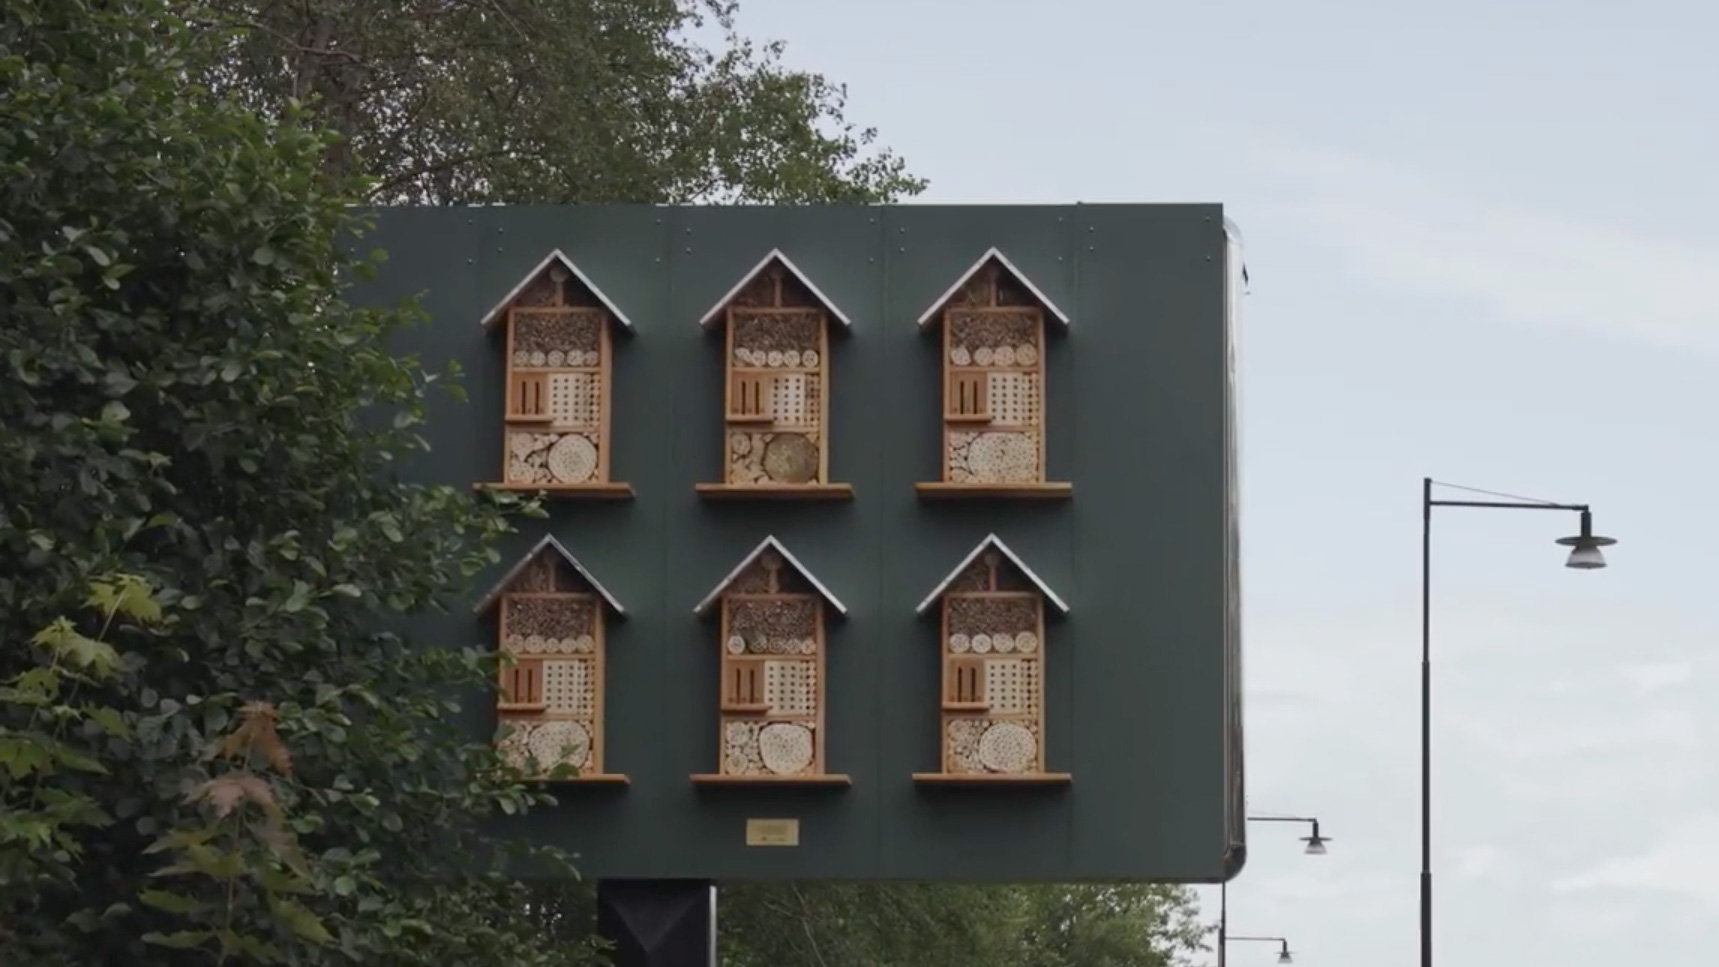 McDonald's is turning its billboards into bee hotels | Creative Bloq